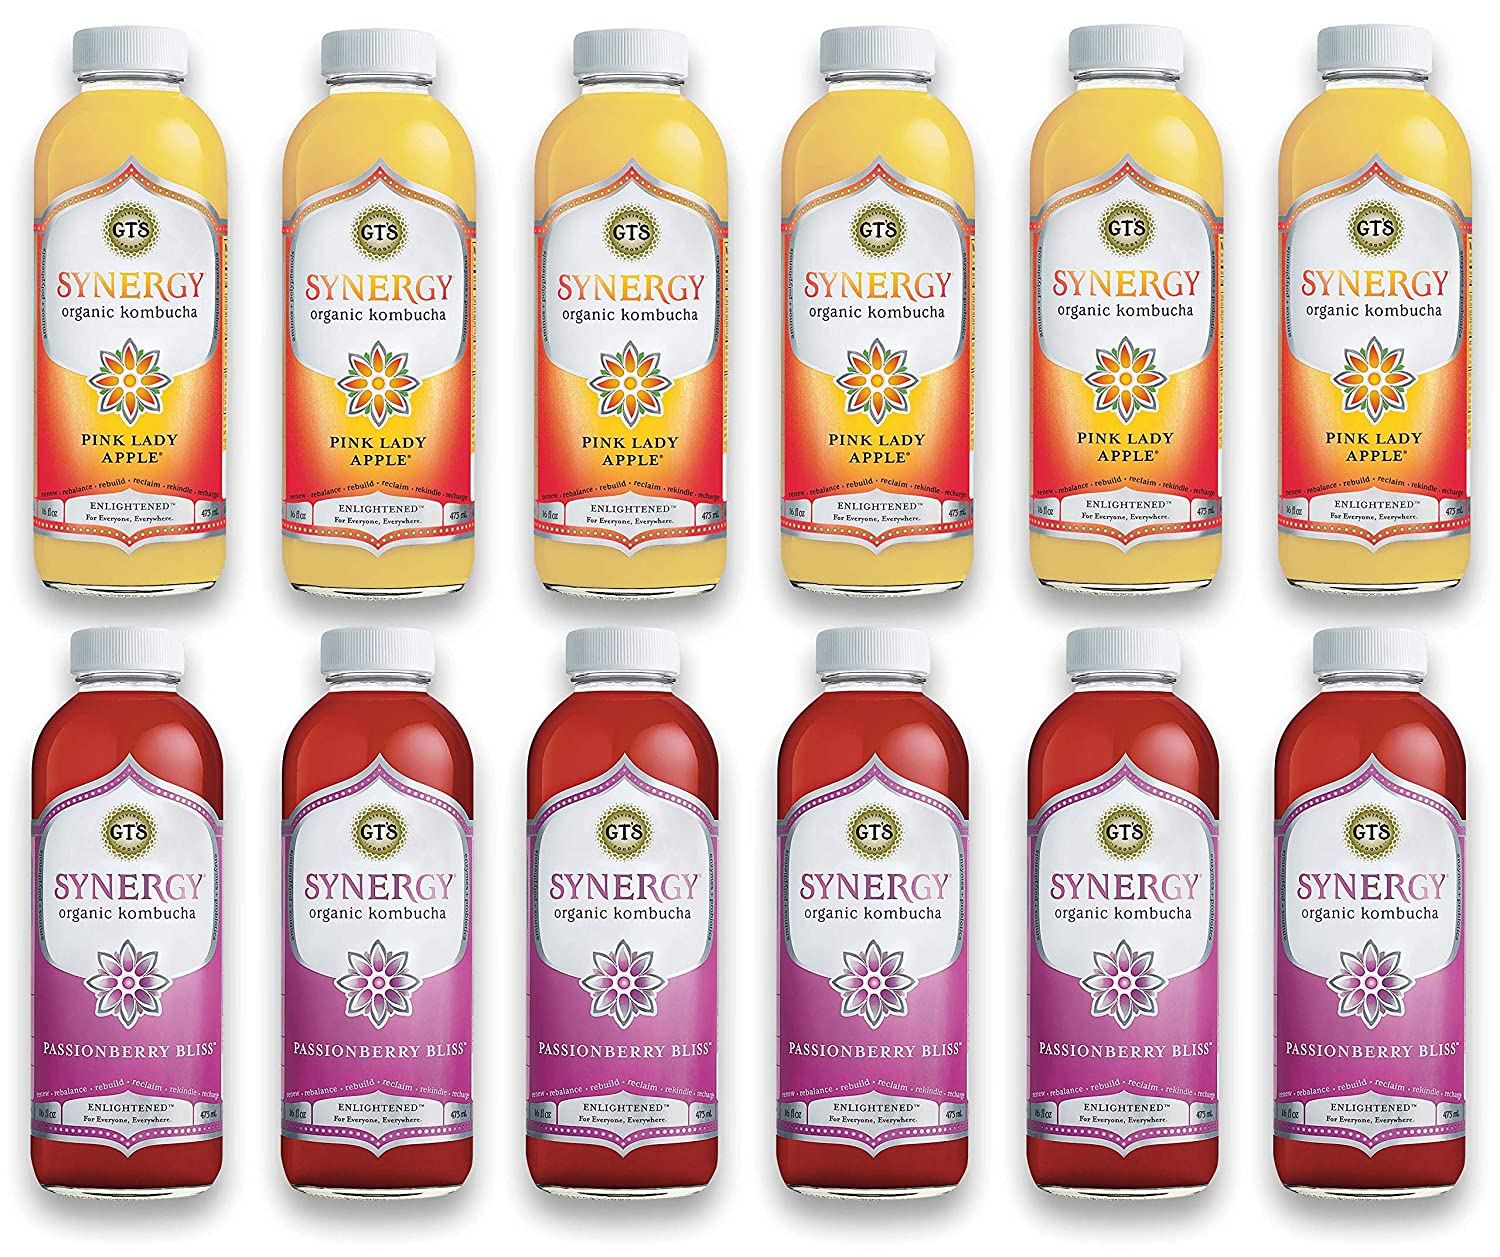 LUV BOX-Variety GT's KOMBUCHA Synergy Kombucha Pack,16 fl oz,12 pk,Pink Lady Apple , Passionberry Bliss